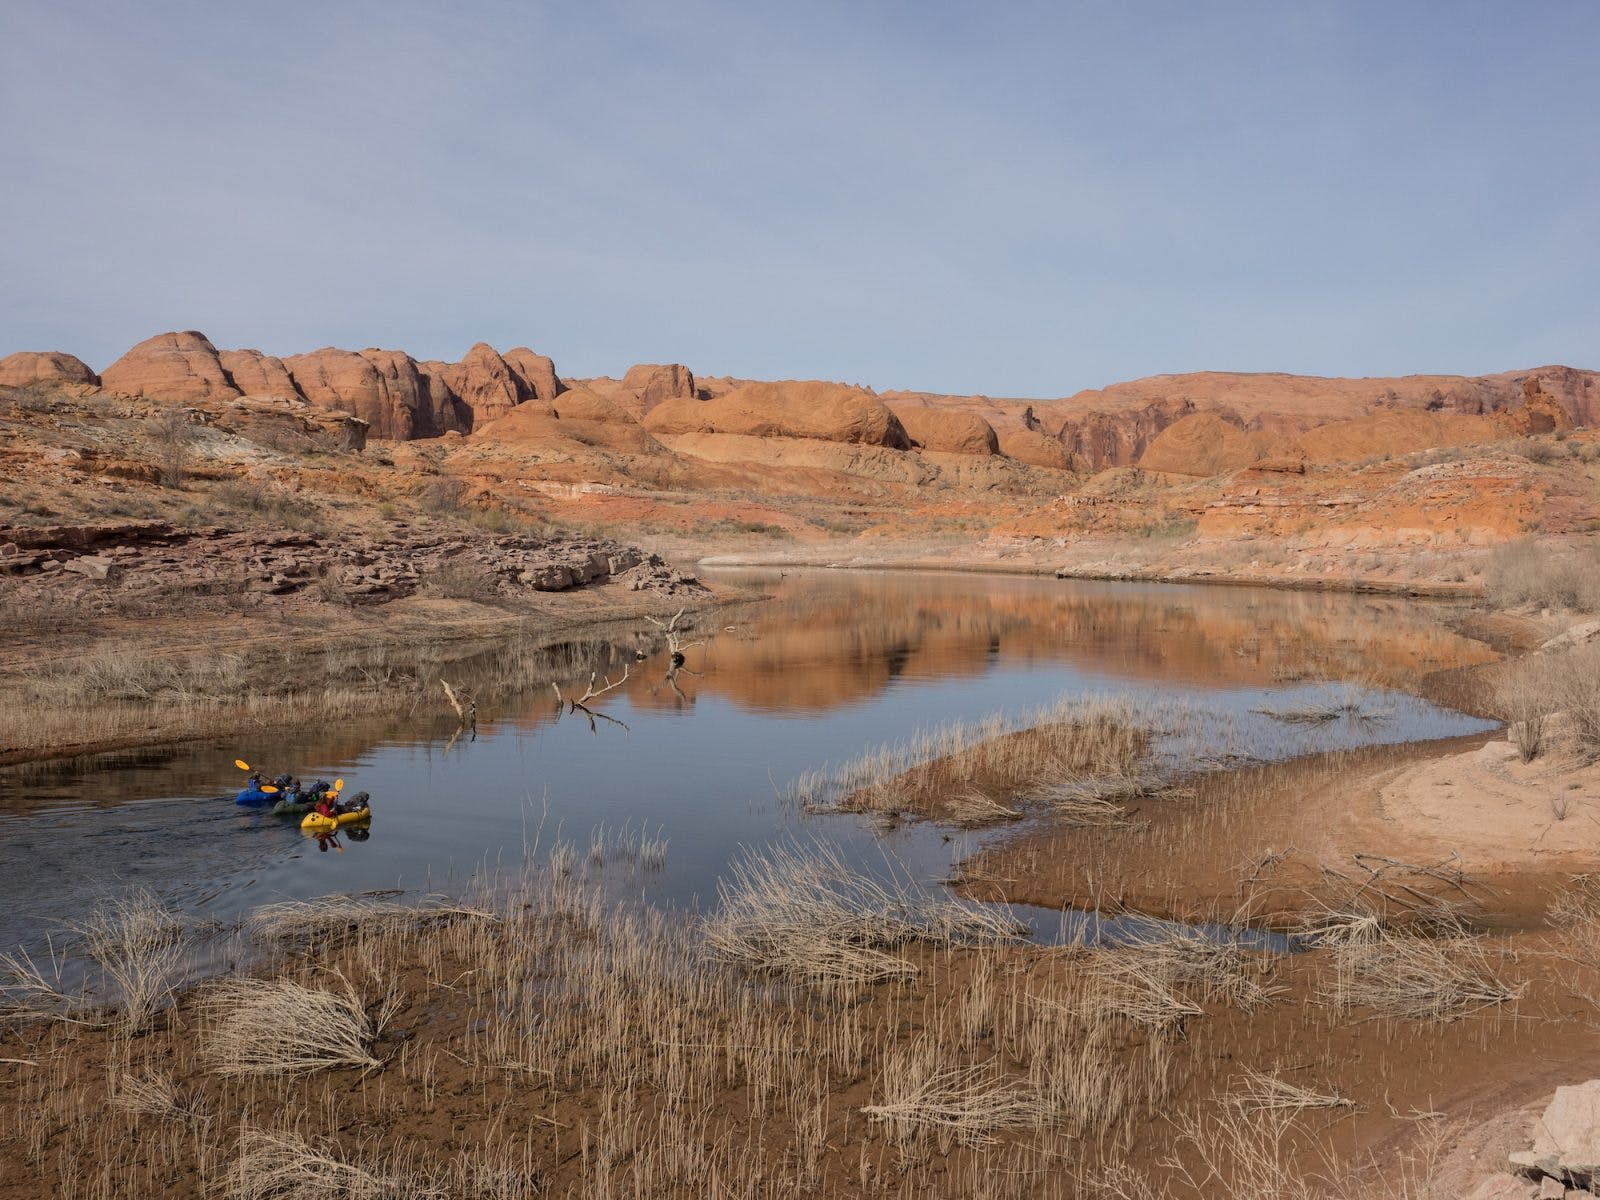 Paddling into a wild and desolate landscape.